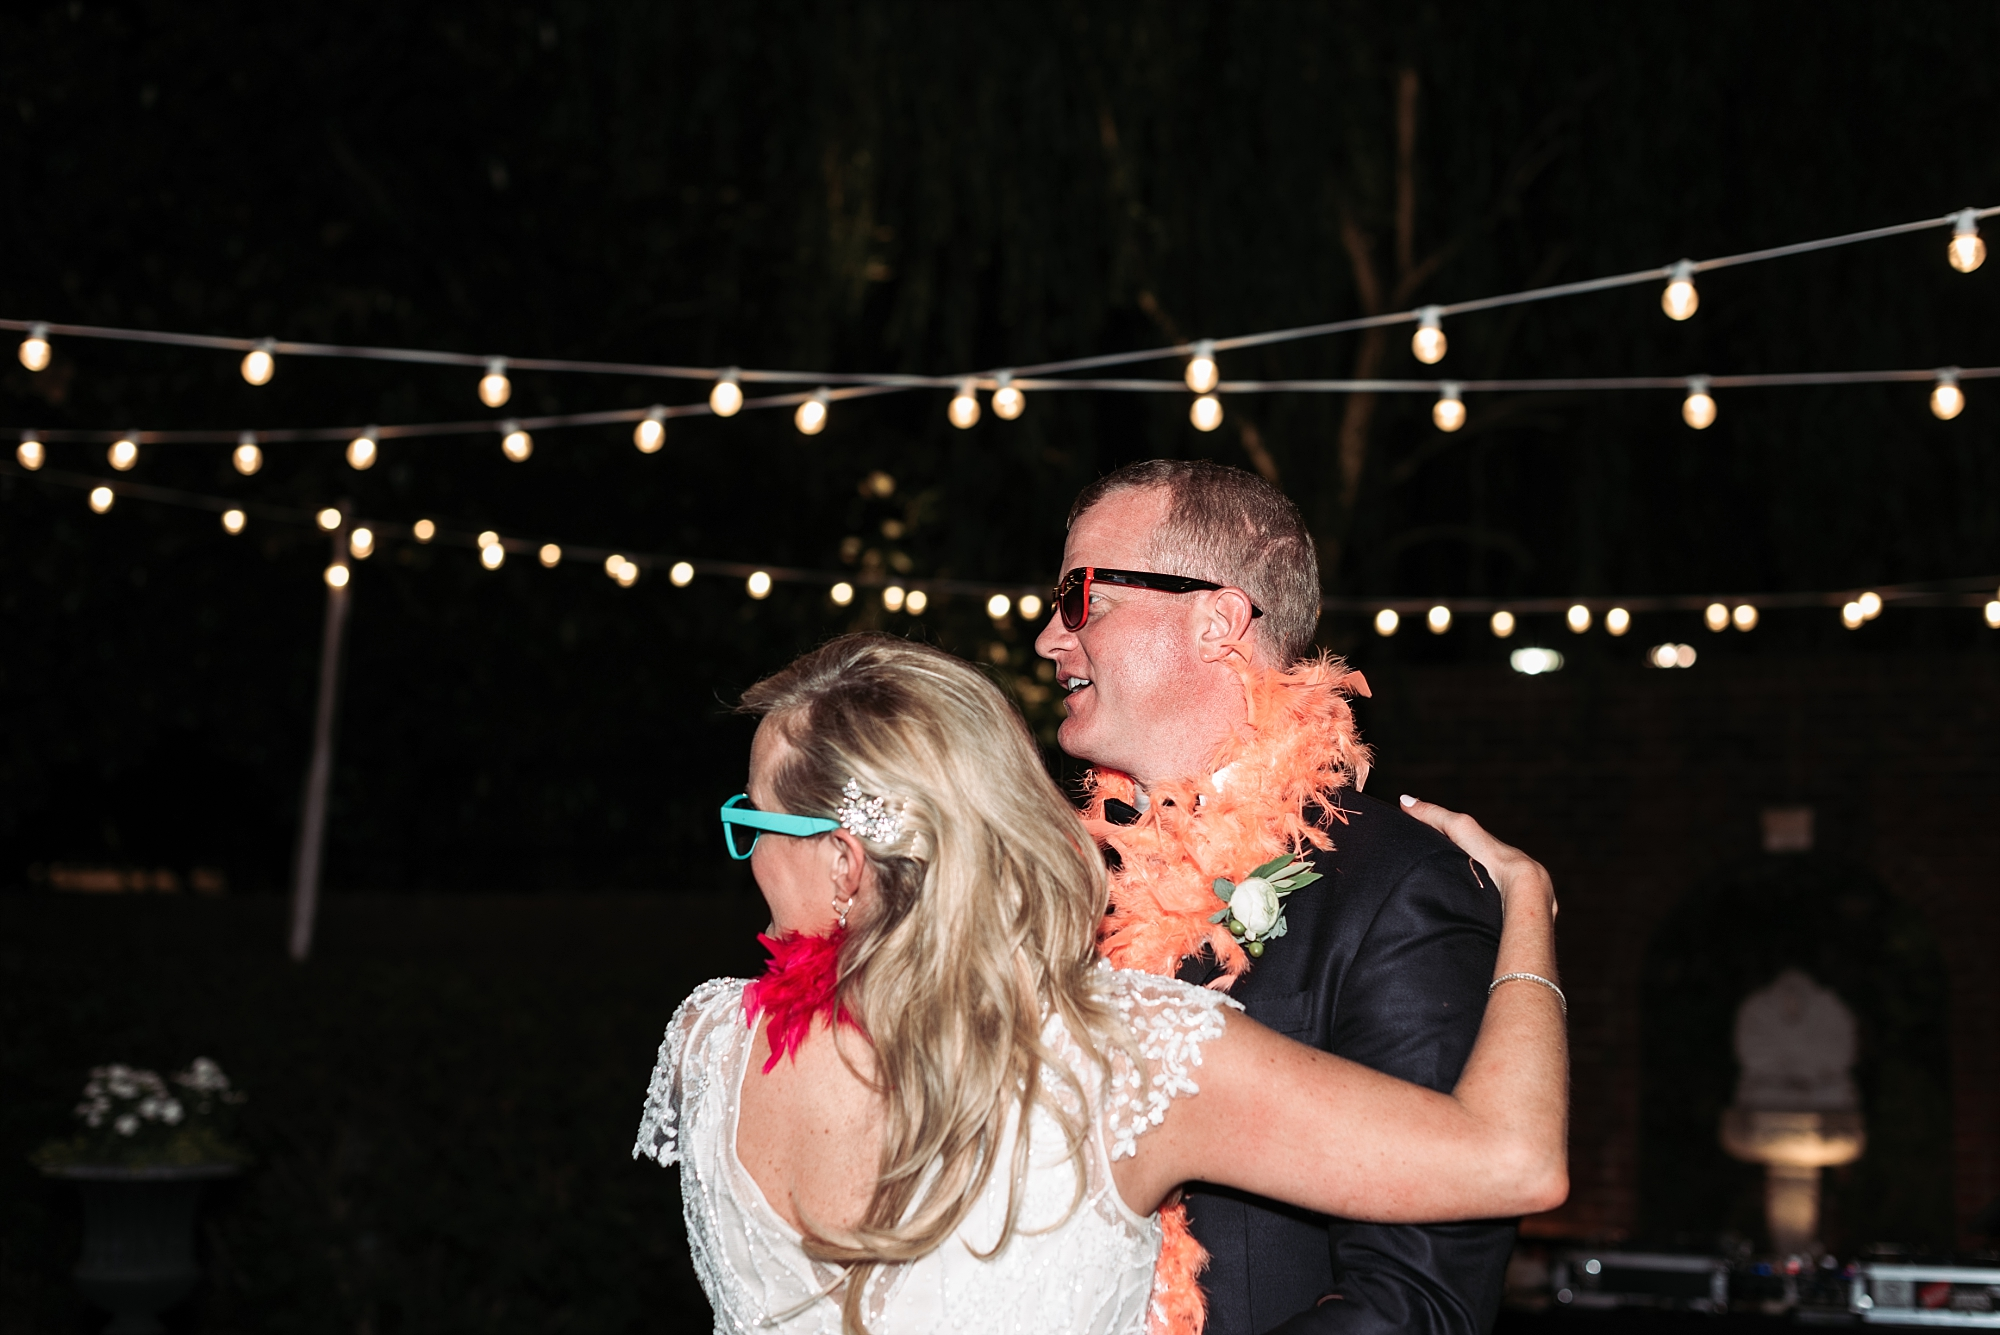 Bennett Brown photography wedding reception string lights Wedding guest dance party celebration